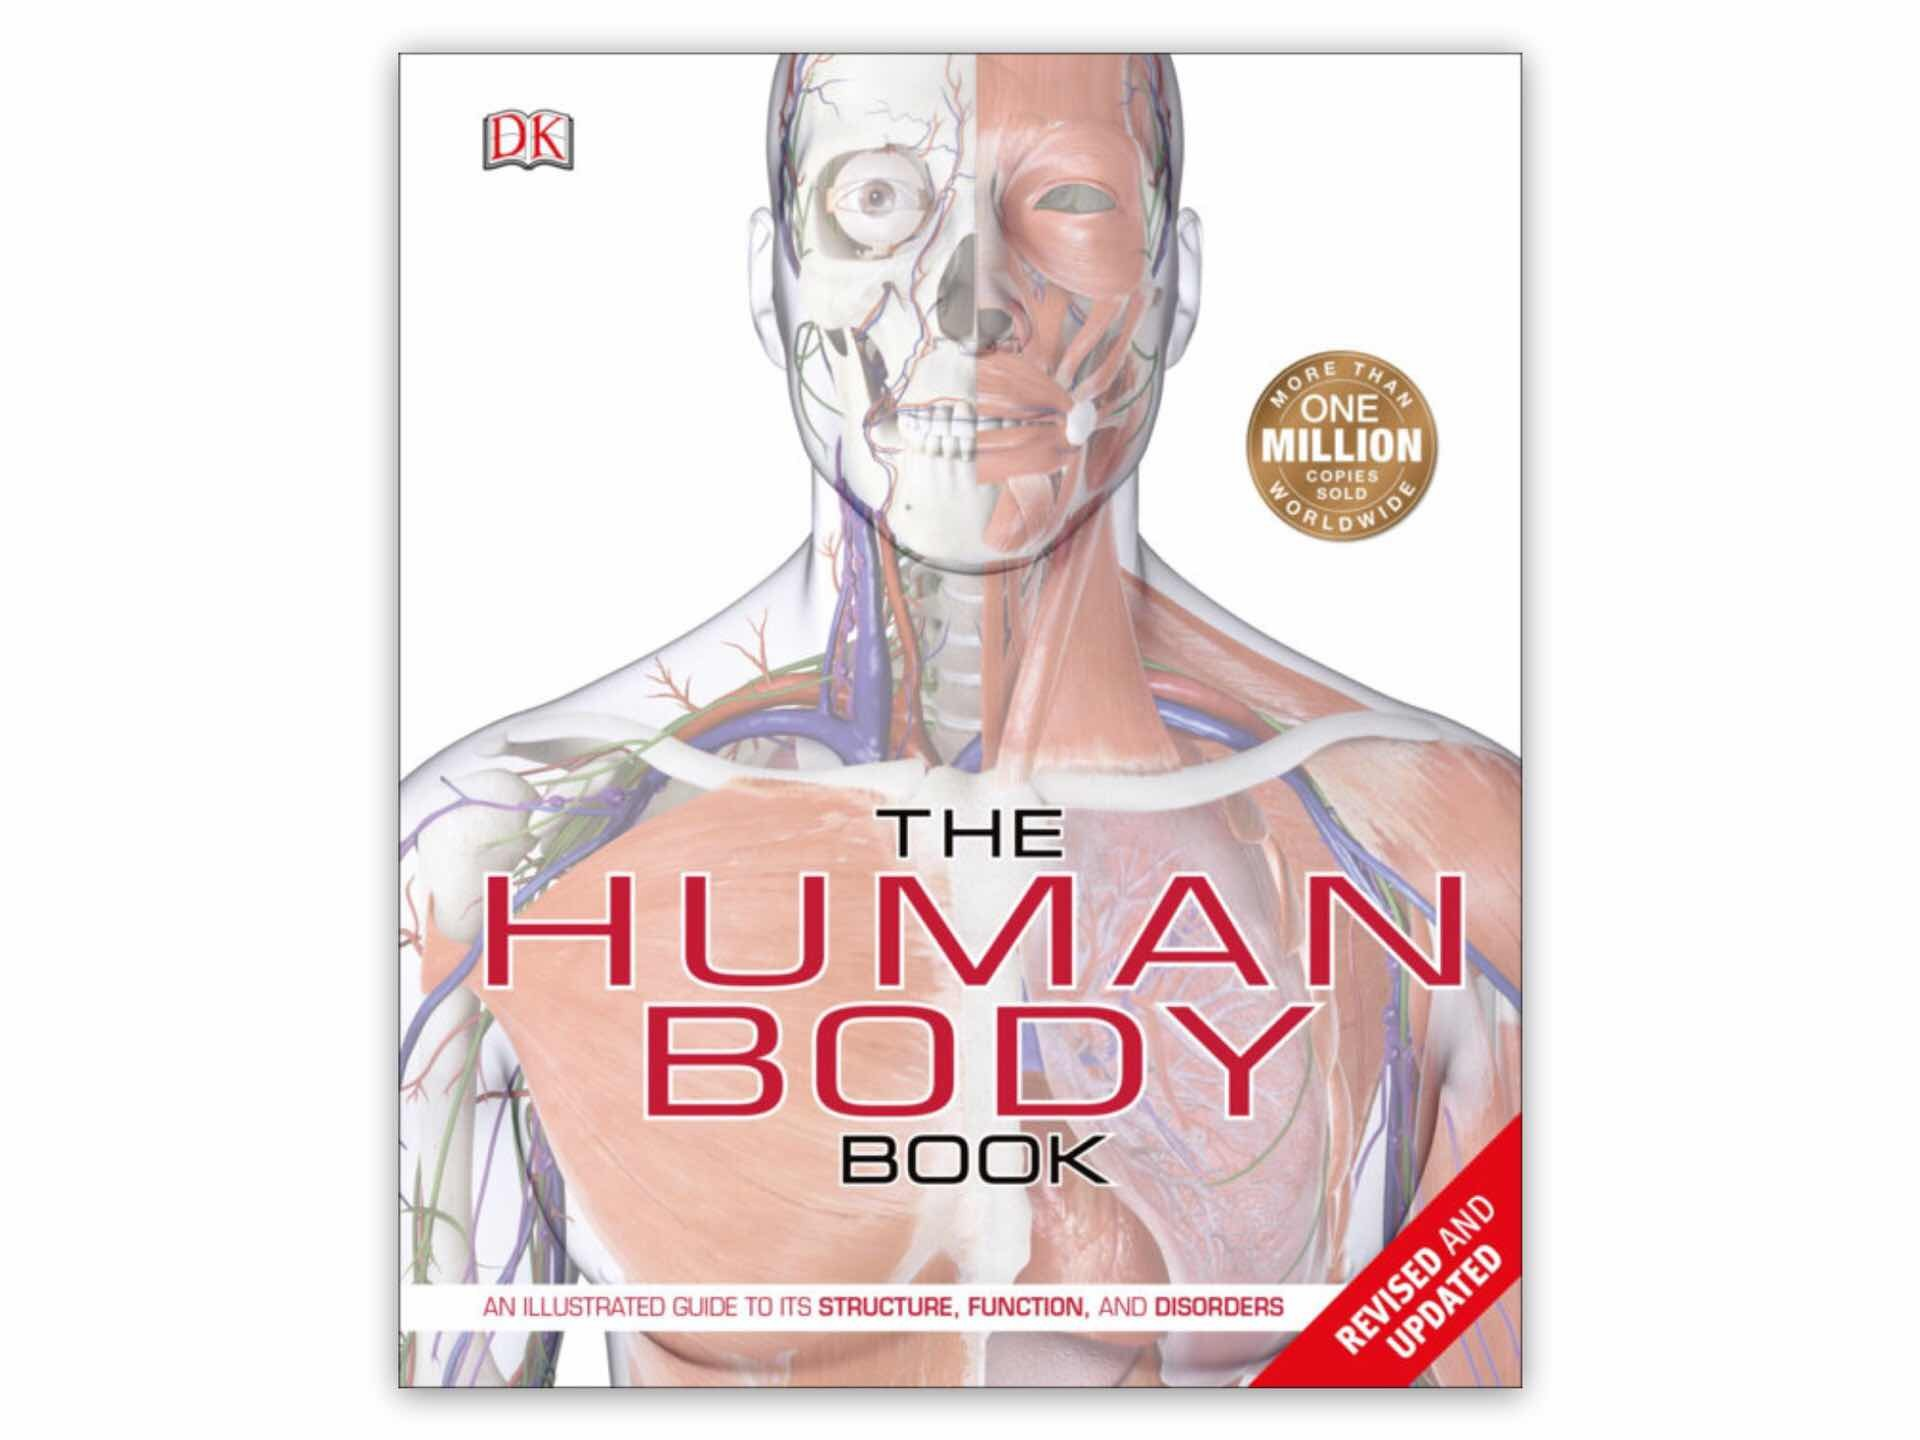 The Human Body Book, 3rd Edition by Richard Walker.